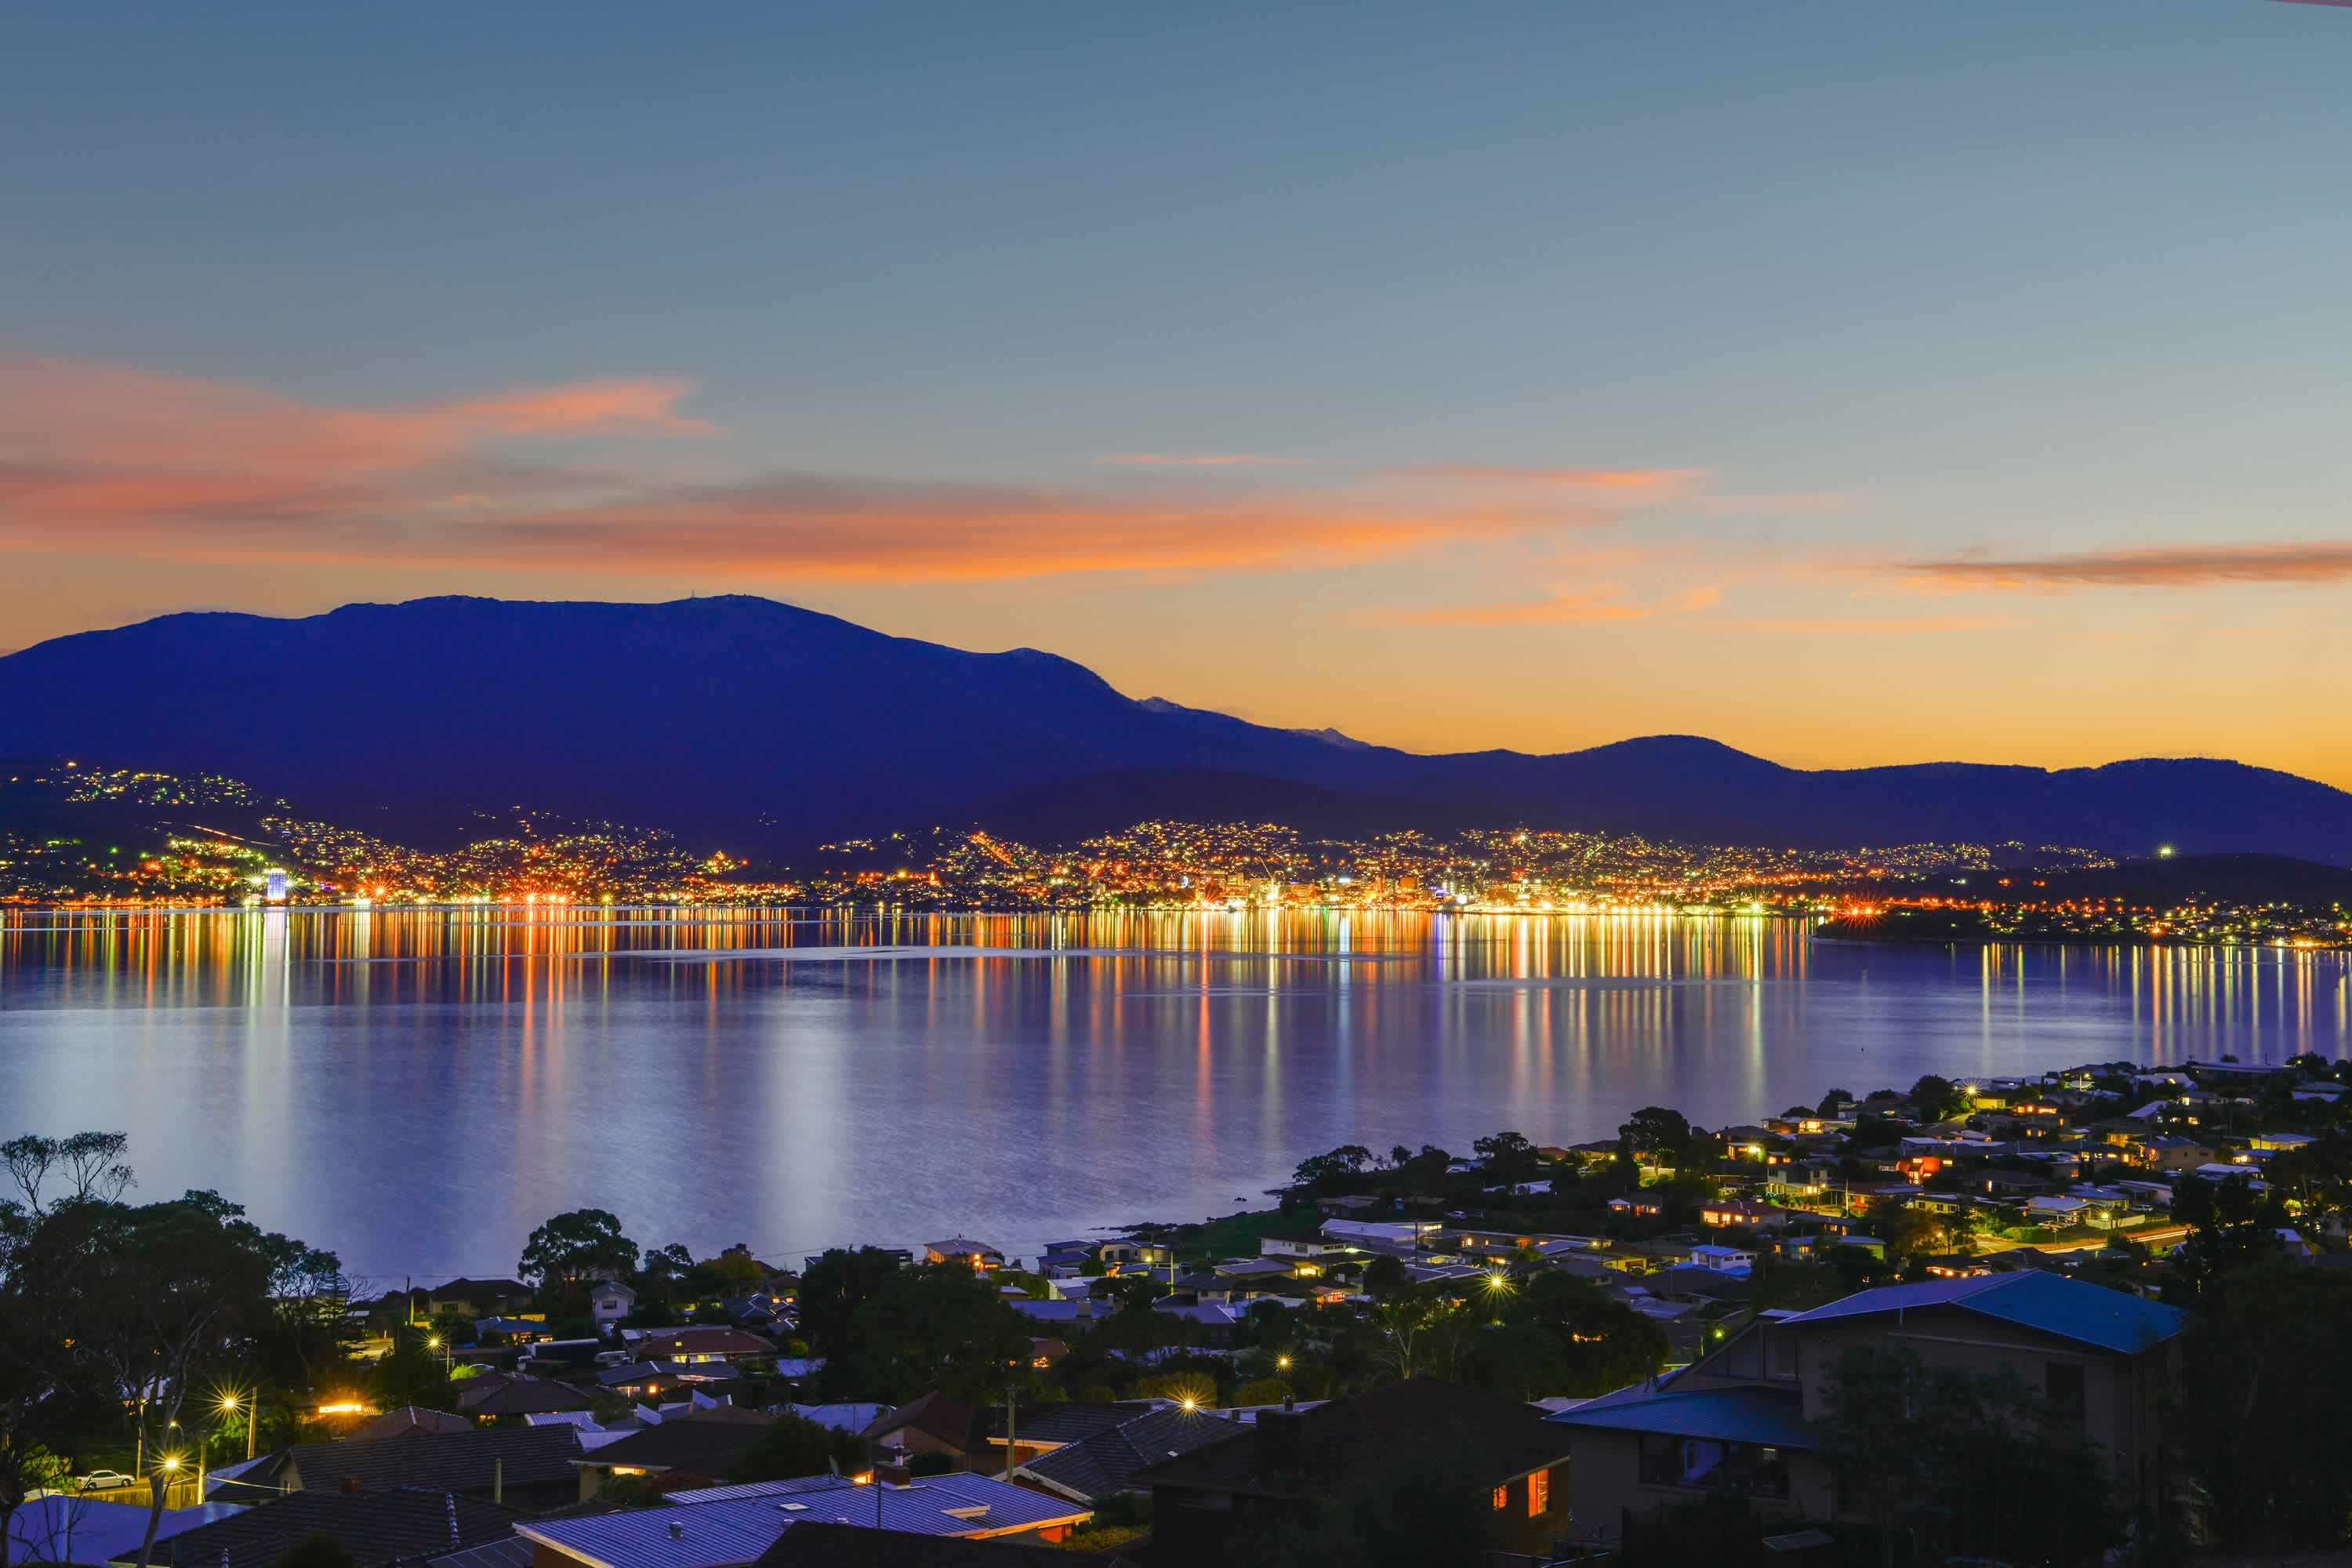 View looking across the River Derwent towards Hobart at night, with reflection of city lights on the water. Photo: Owen Fielding.